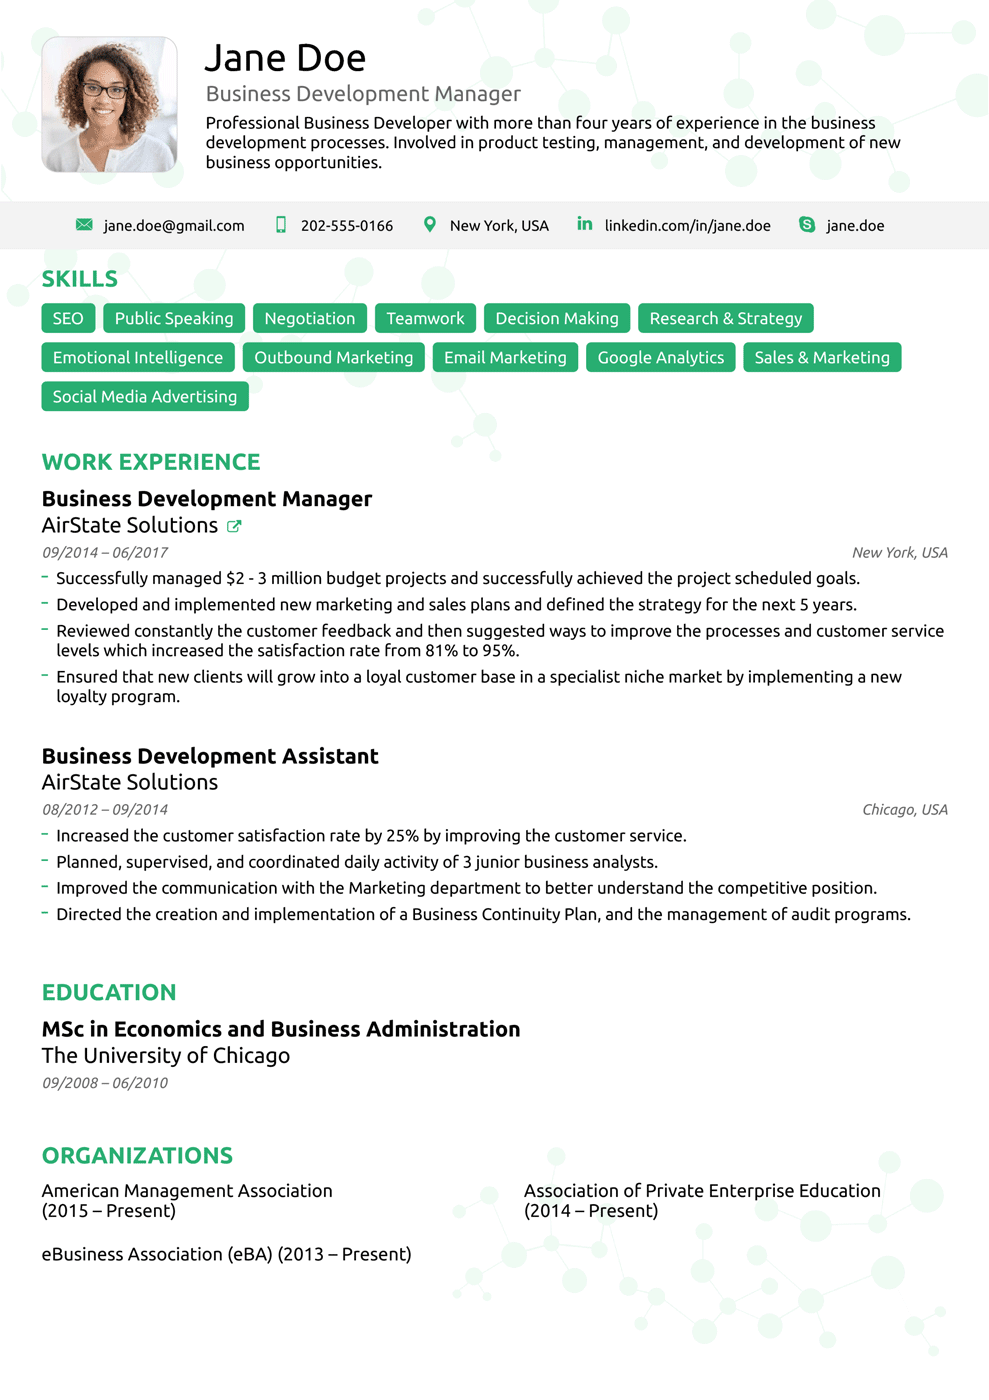 executive rsum template - Resume Template Professional